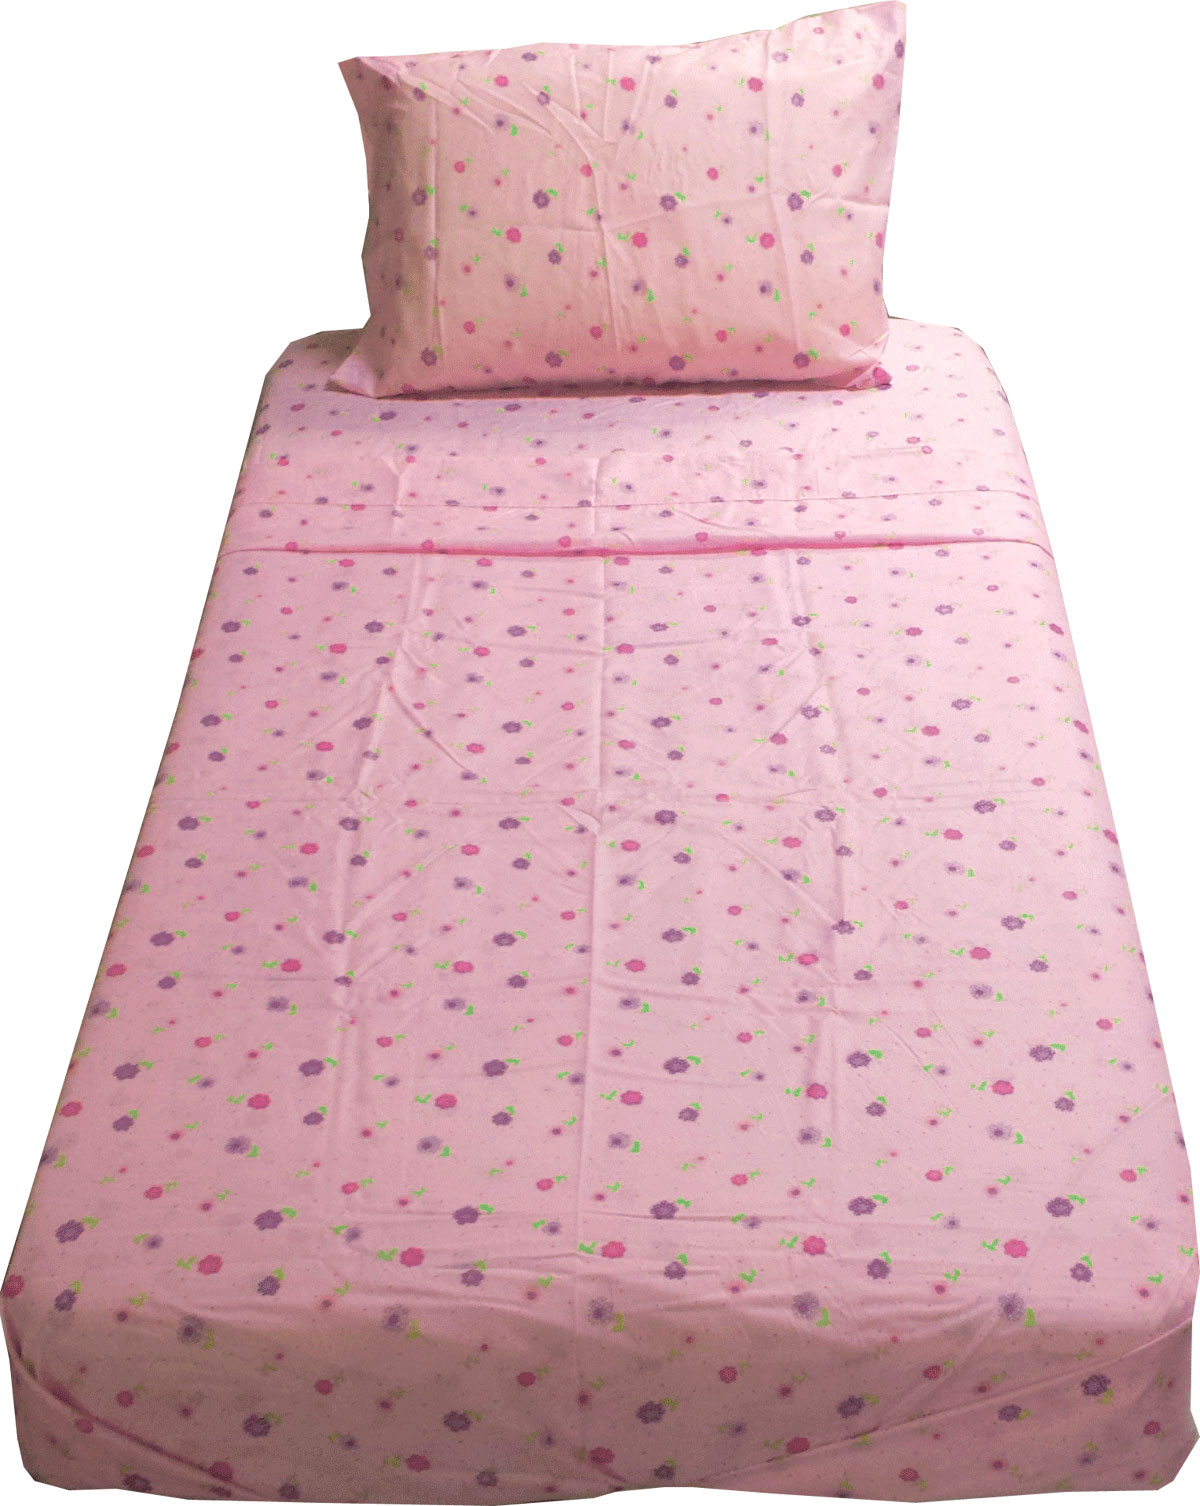 Dotted Flowers Twin Sheet Set - Pink Floral Bedding Twin Size